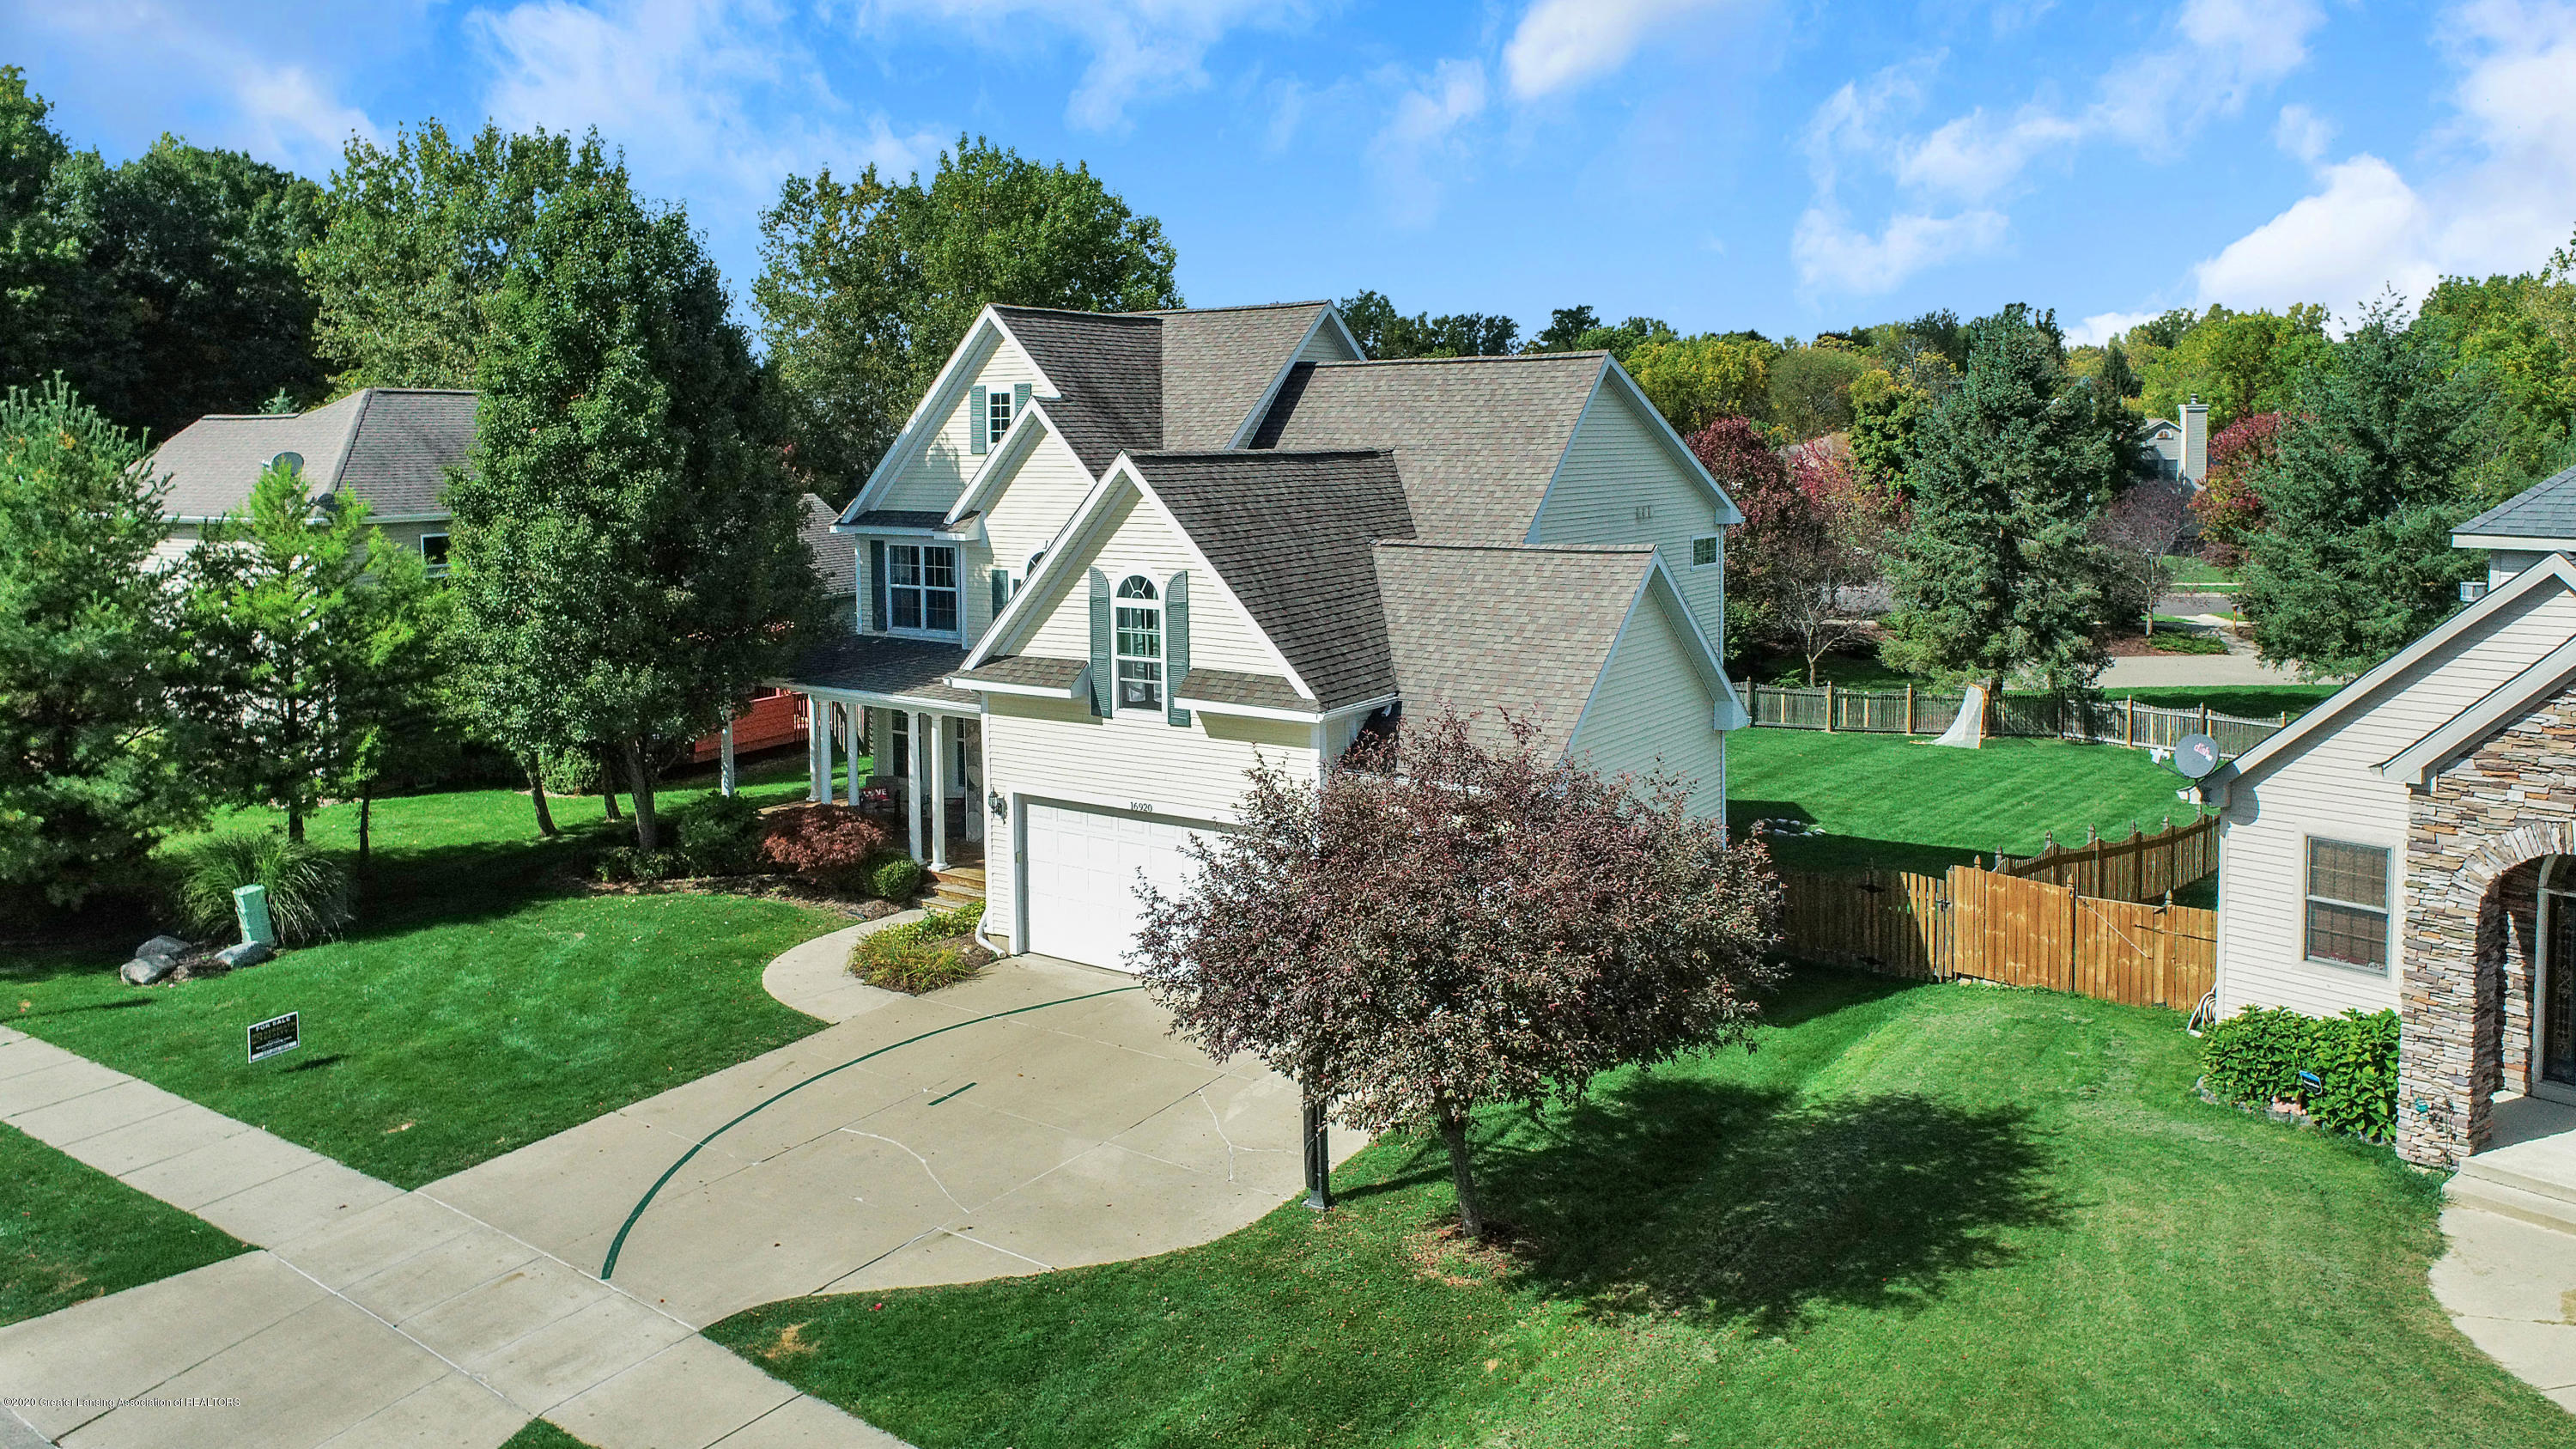 16920 Black Walnut Ln - DJI_0020 - 52